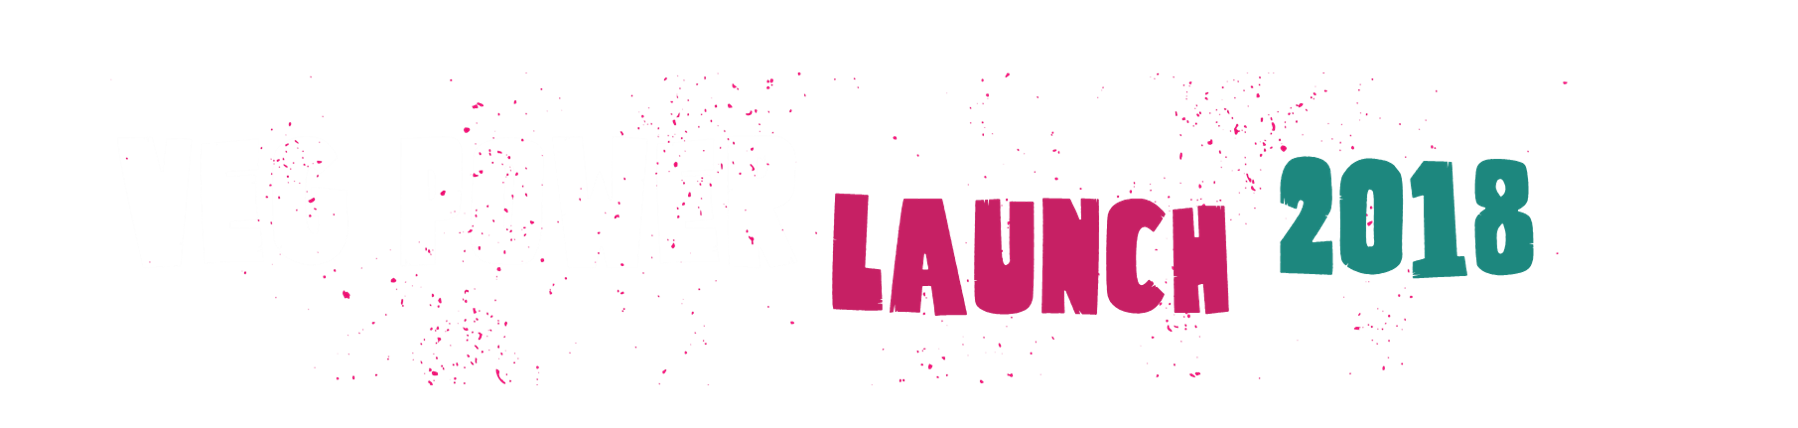 Veg Power Launch